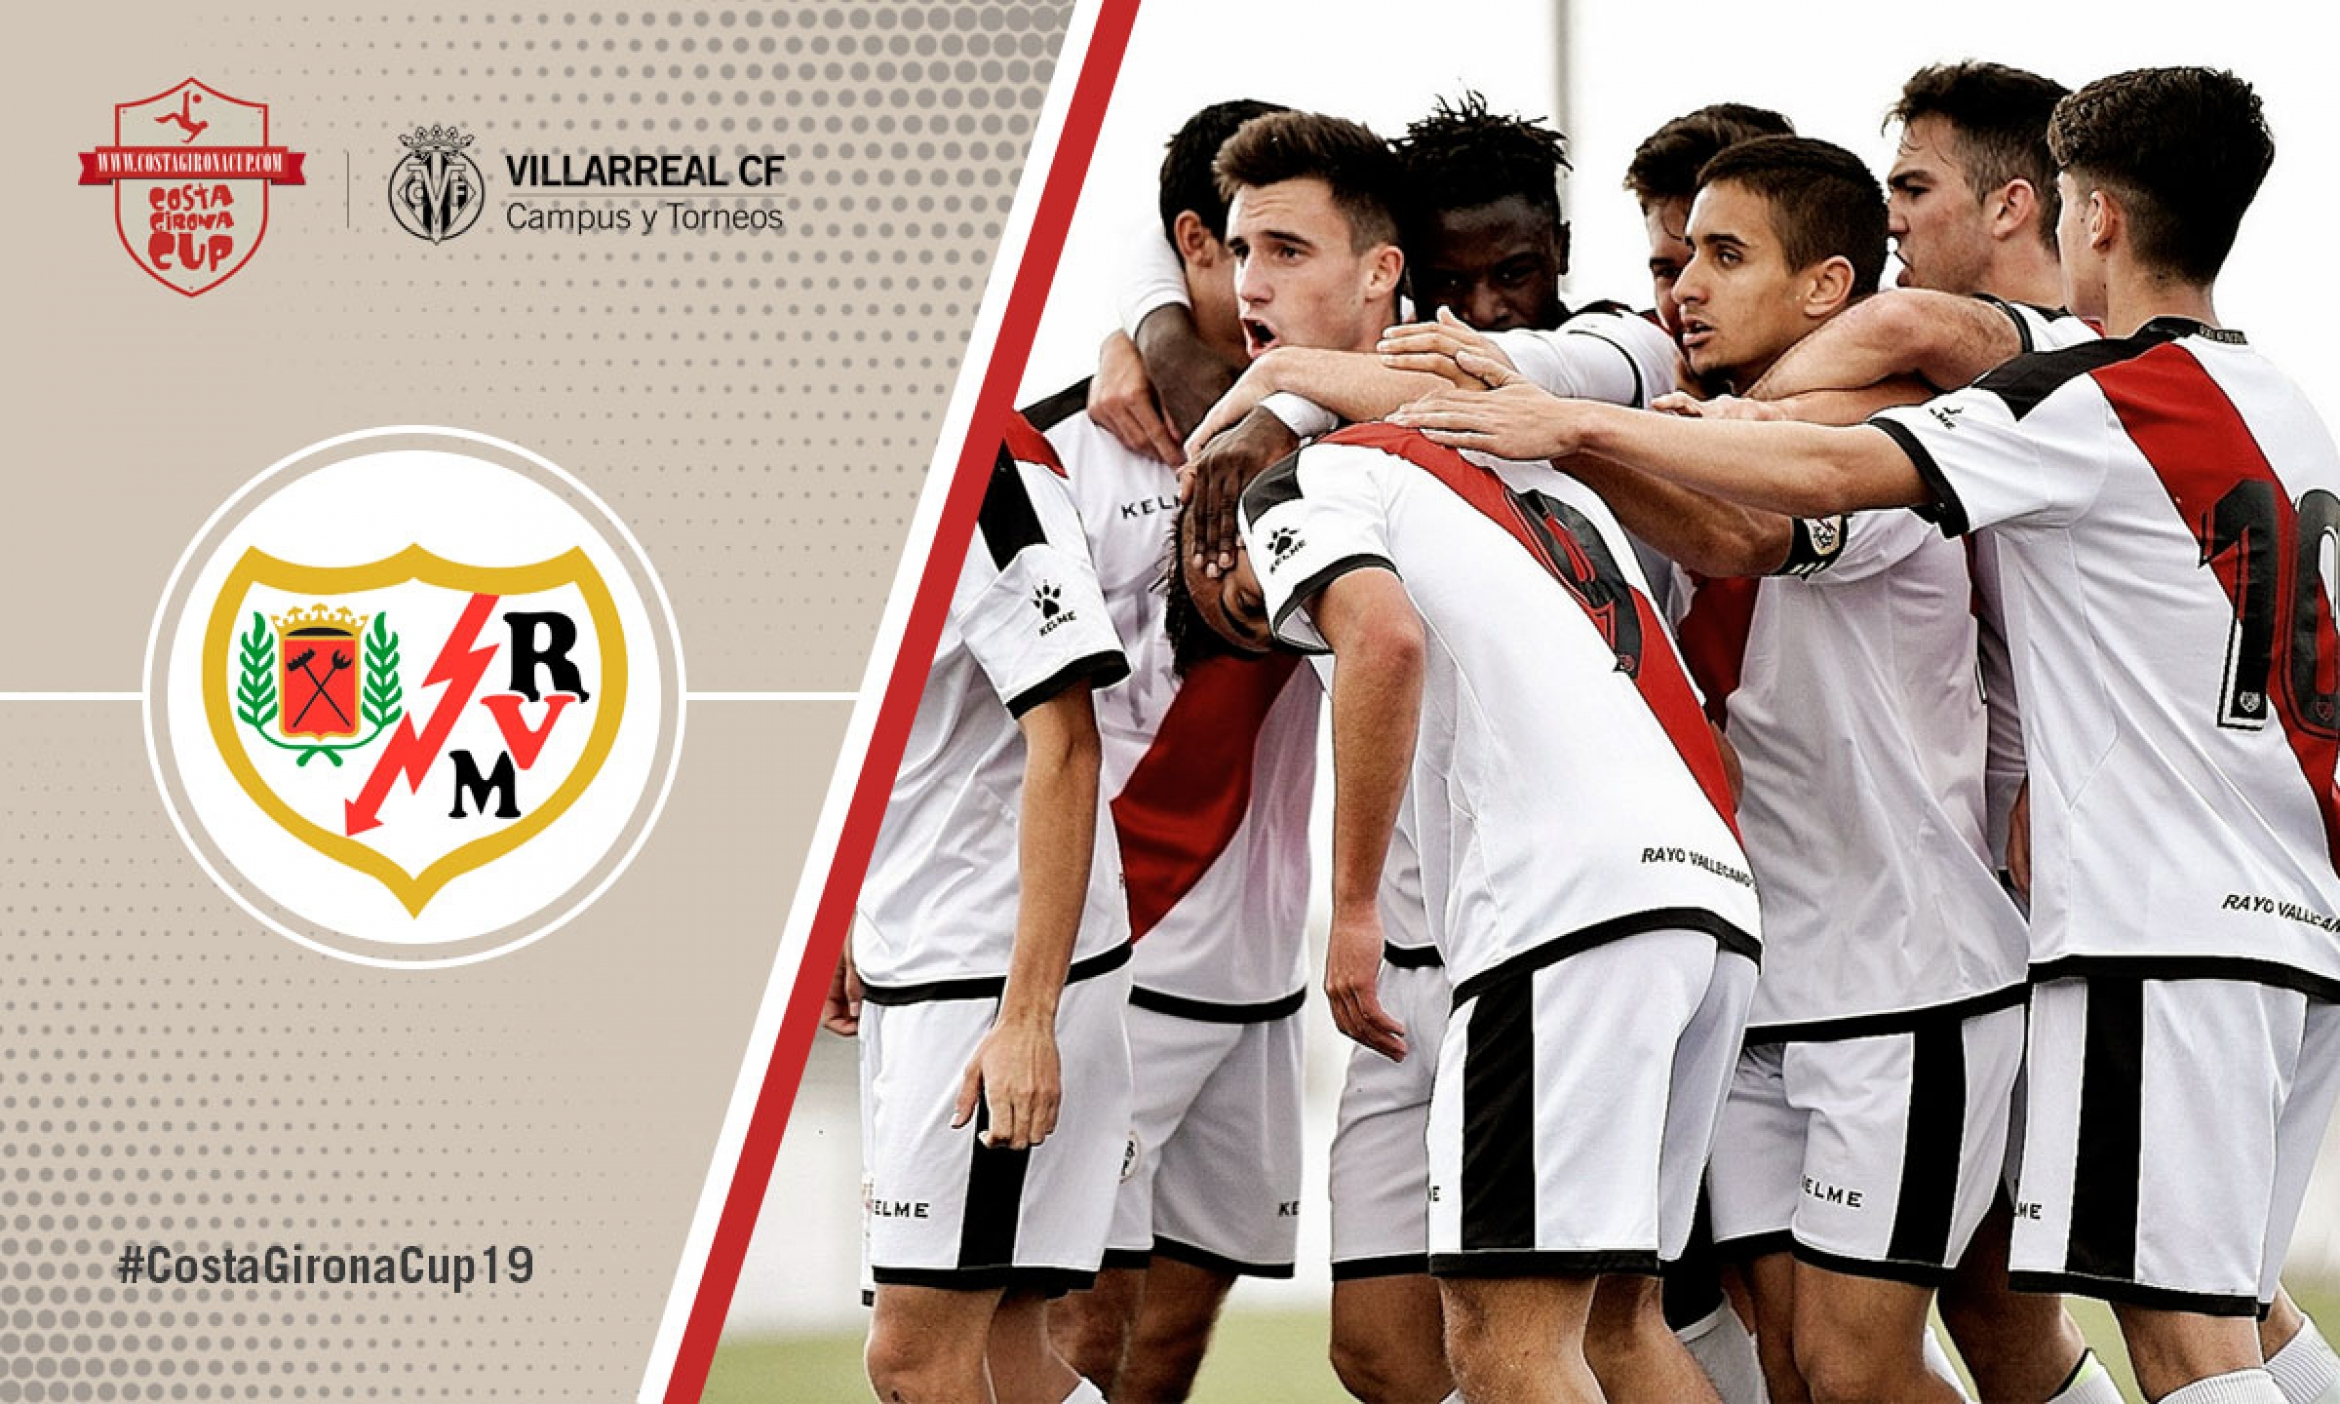 OFICIAL: RAYO VALLECANO